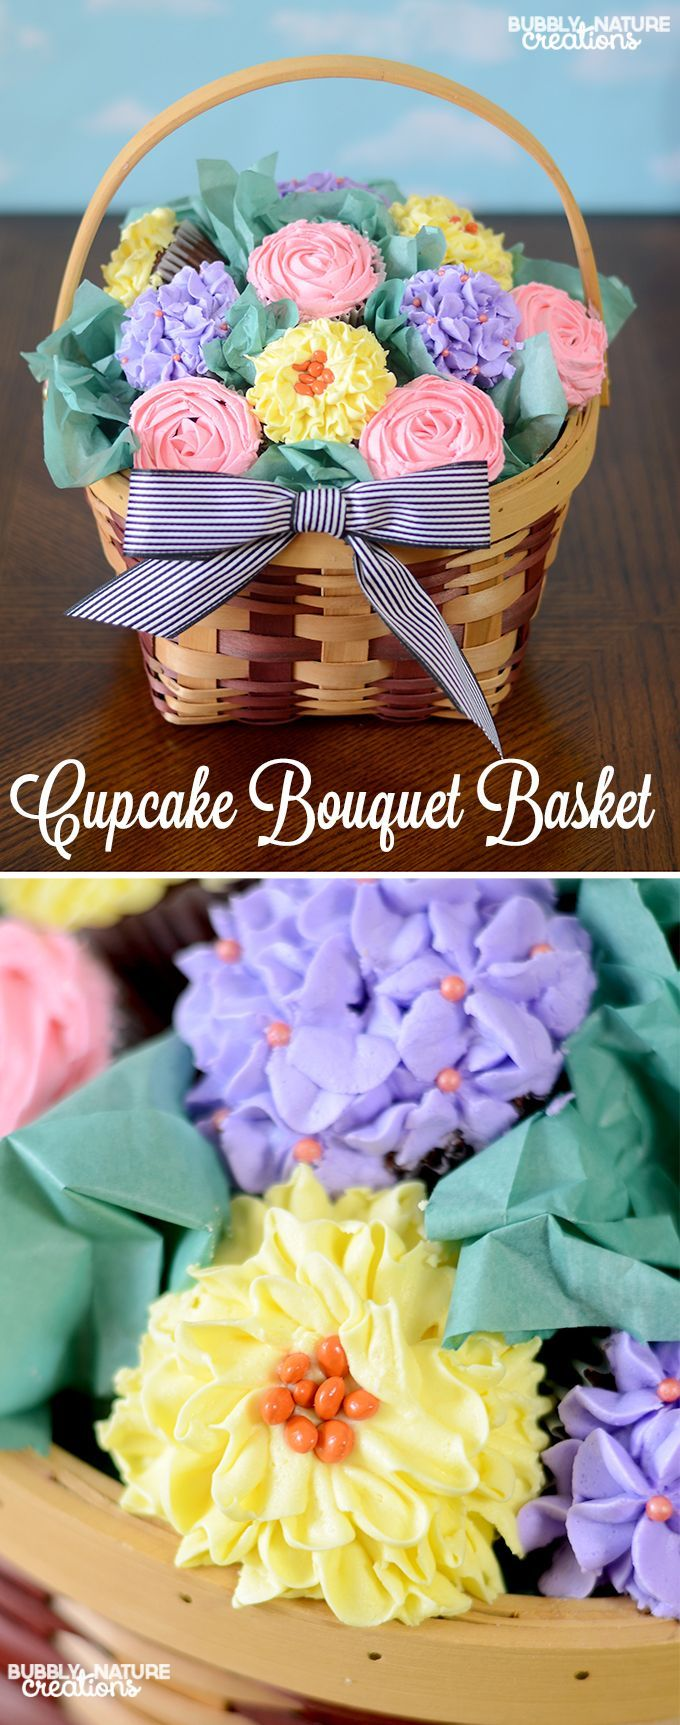 How To Make A Cupcake Bouquet Basket Such A Pretty Mothers Day